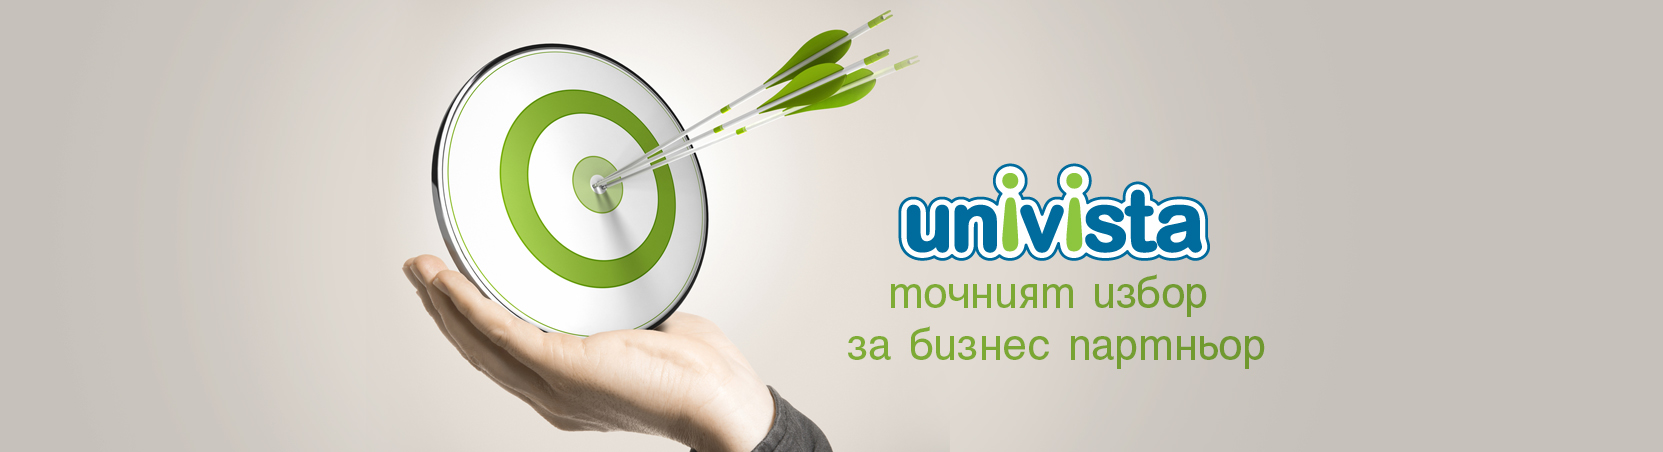 Univista_web-banner_distribution_01